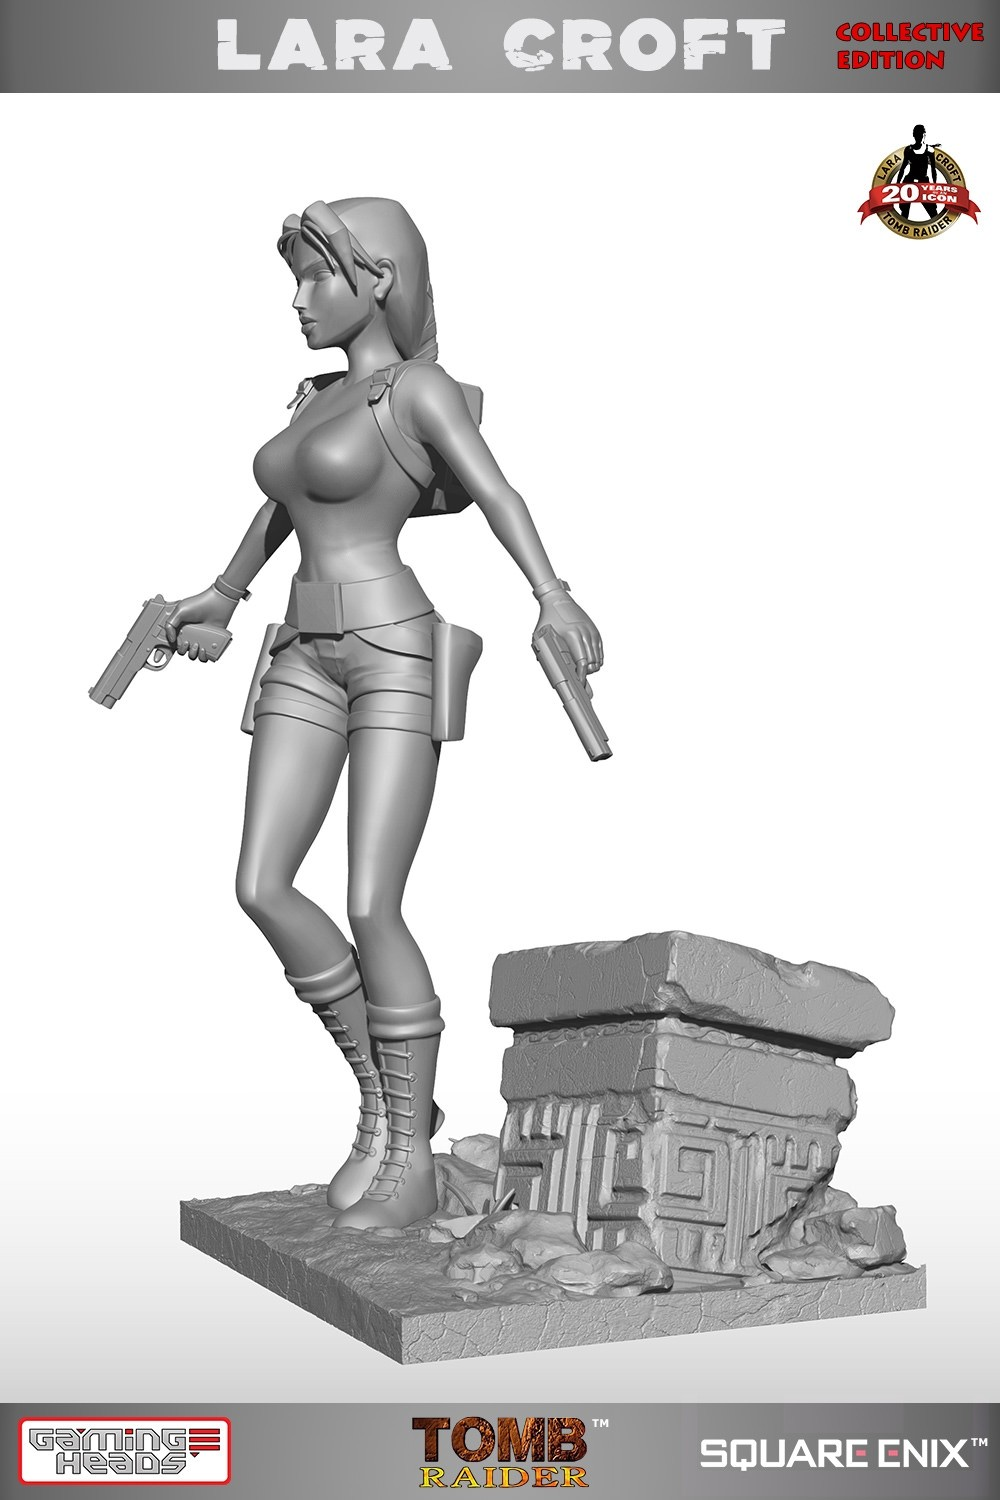 Tomb Raider Lara Croft statue by GamingHeads - Collective Edition